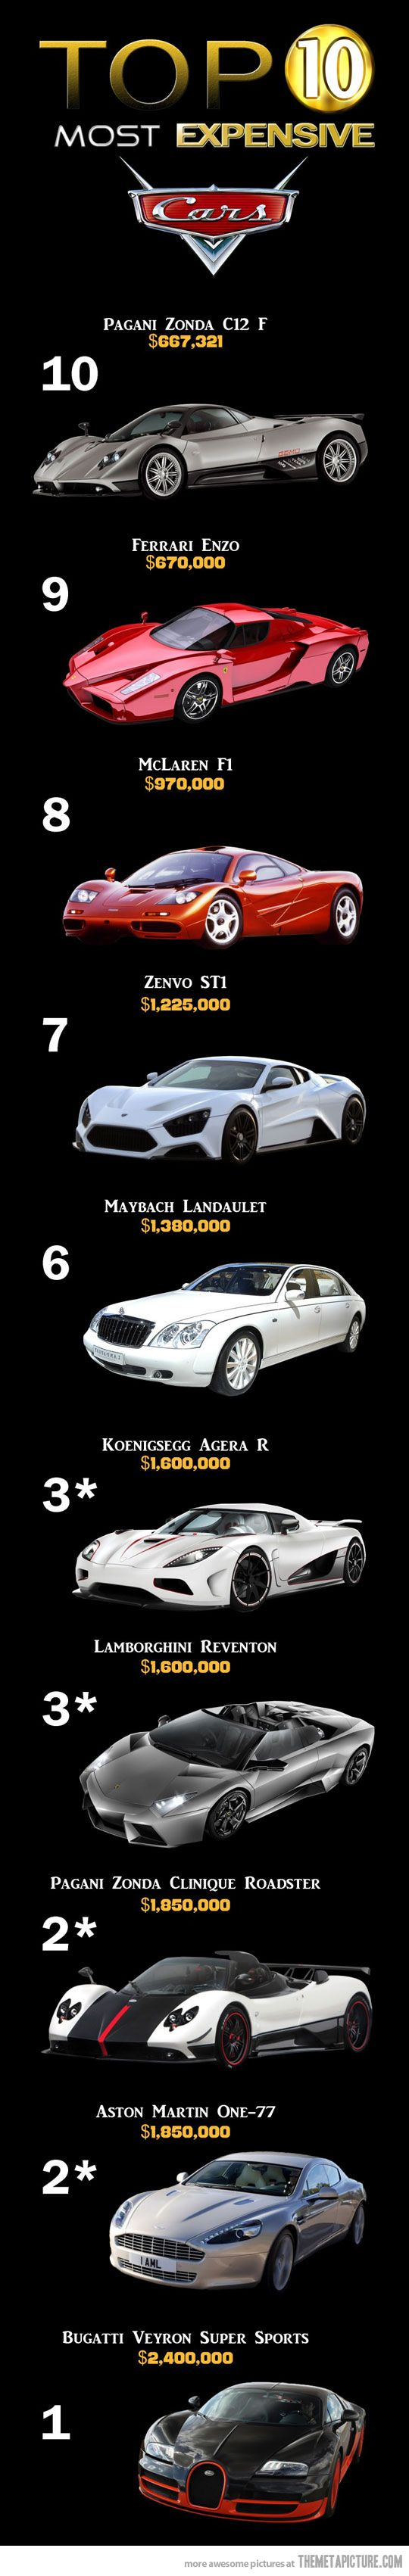 The Most Expensive Cars In The World #Sedan #Saloon #Hatchback #4Door #Vintage #Roadster #2Door #Sports #Cadillac #Chevrolet #Buick #G M C #Mustang #Explorer #Escape #Focus #Lincoln #Volvo #Aston Martin #Ferrari #Volkswagen #Mercedes #Fiat #Nissan #Toyota #Rover #Rolls #Citroen # #LuxuryCars #VintageCars #sports cars #conceptcars